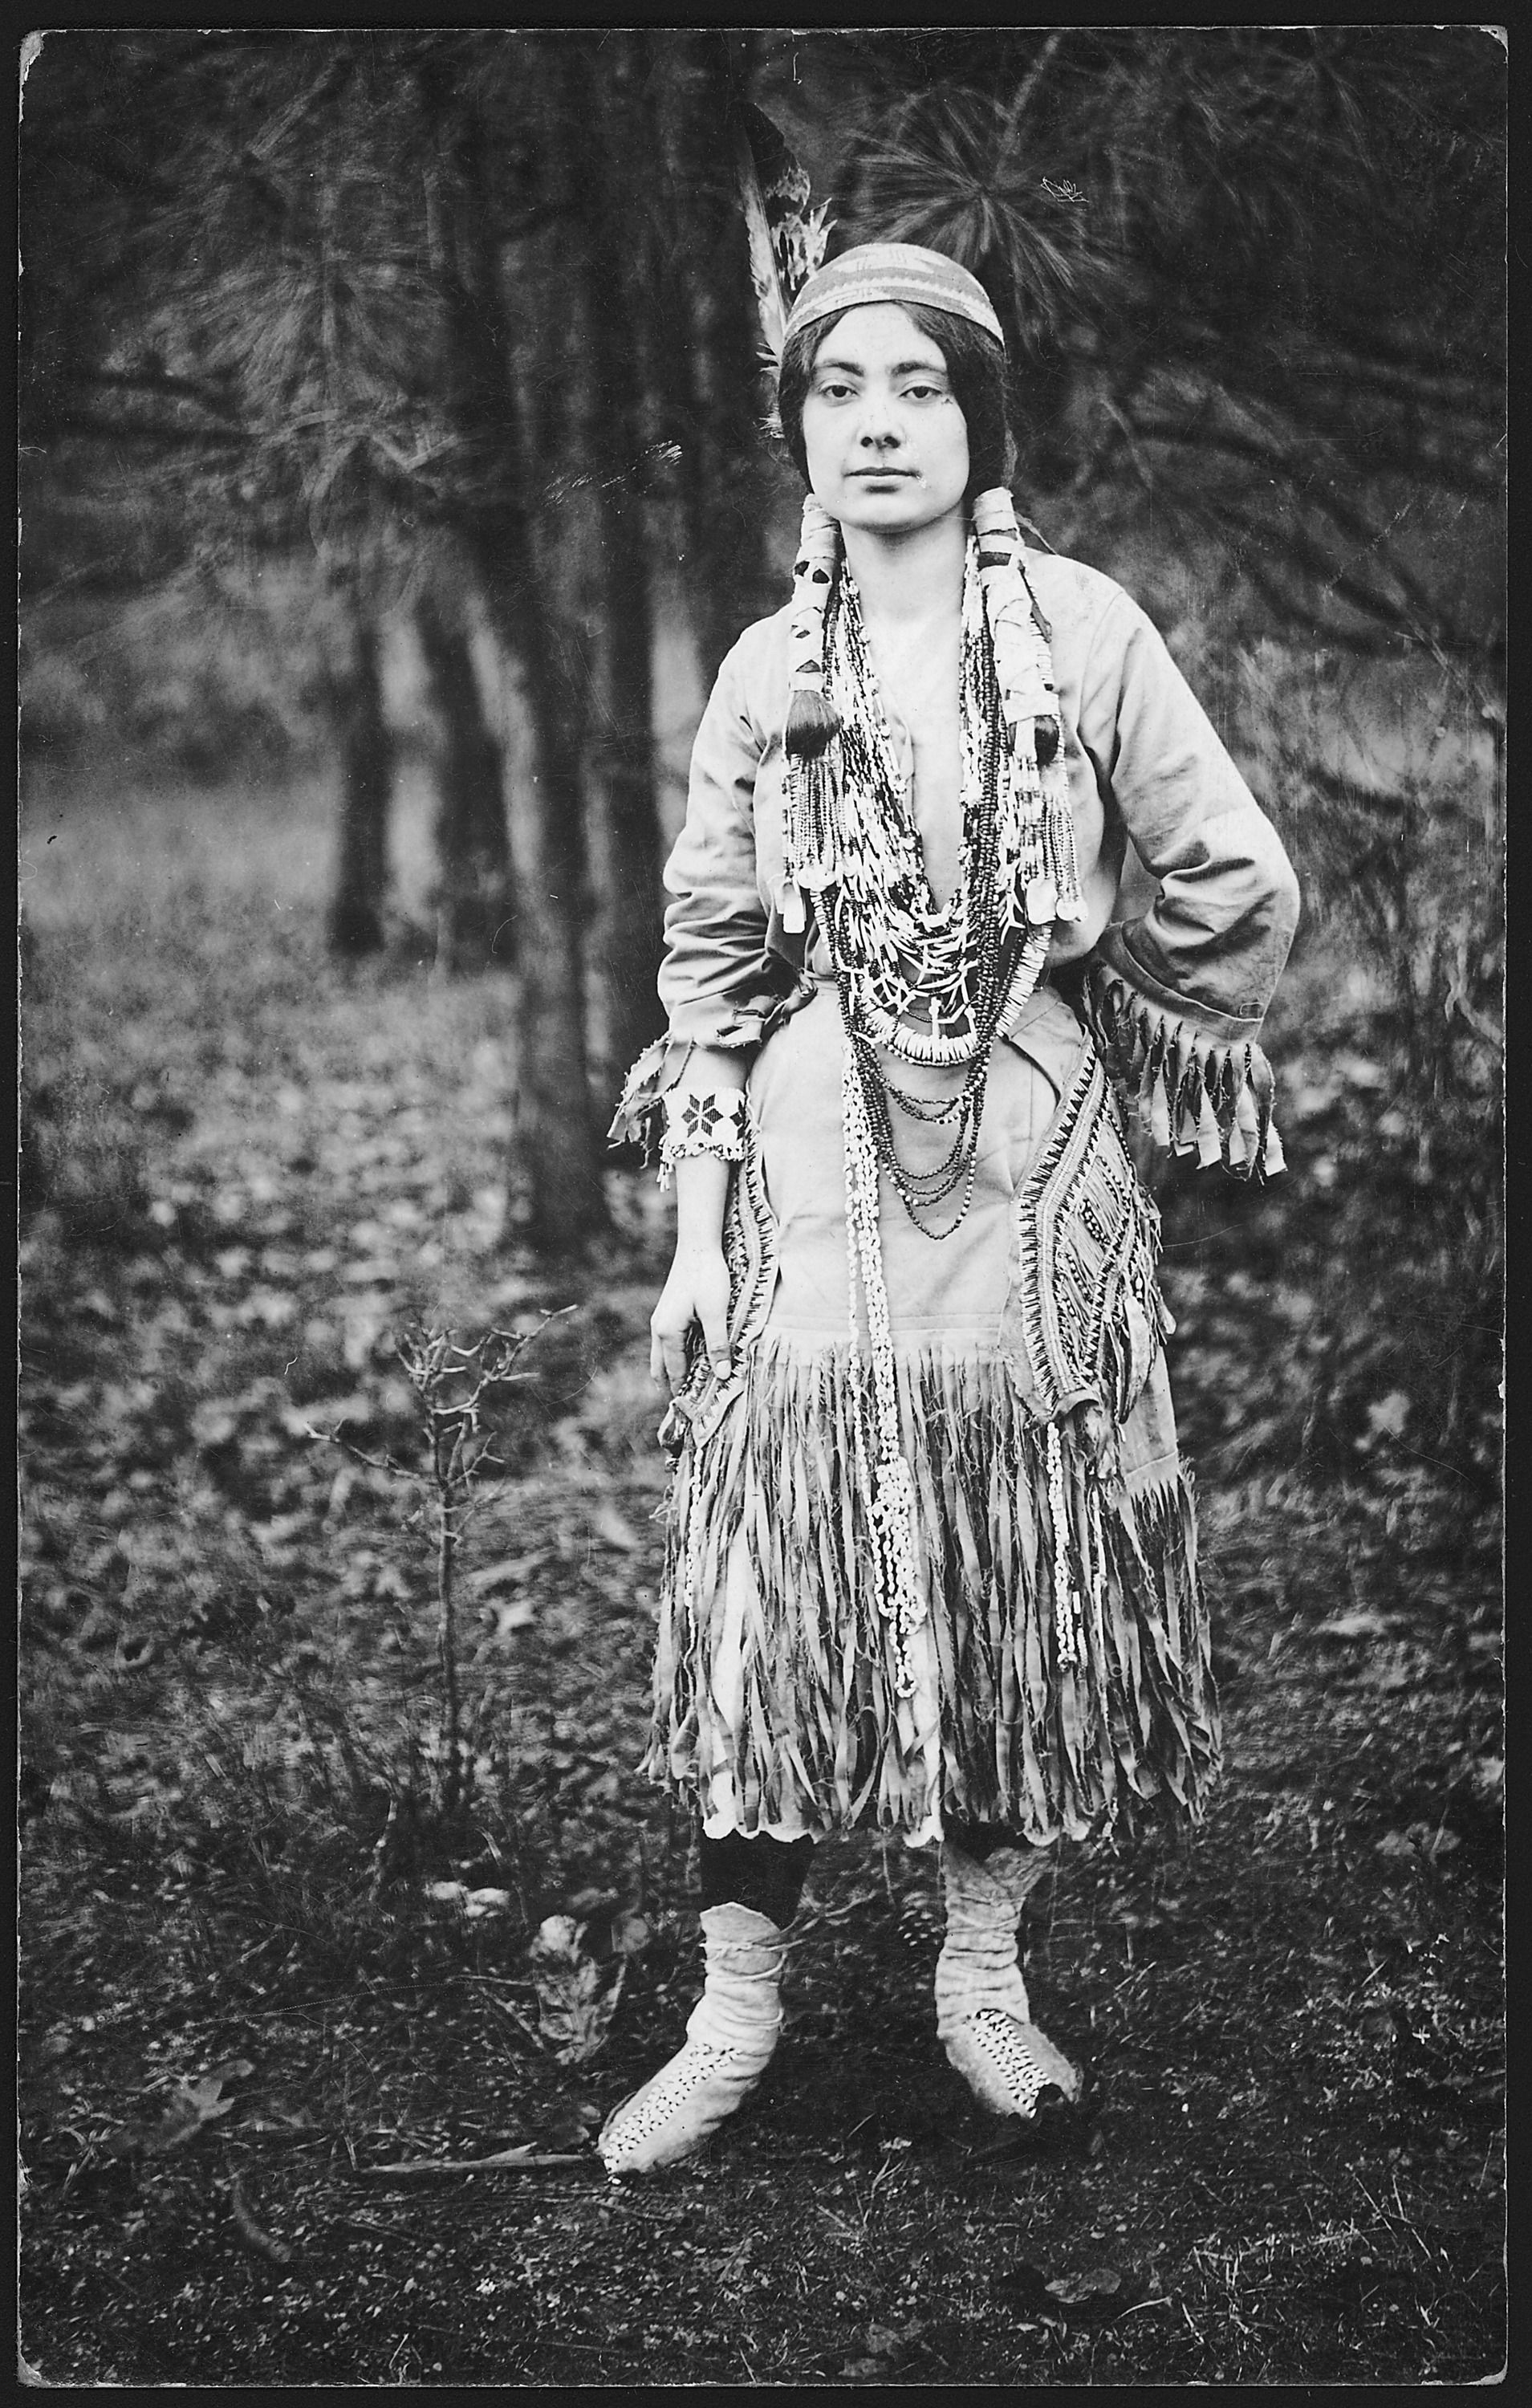 An Old Photograph Of An Native American Maiden In